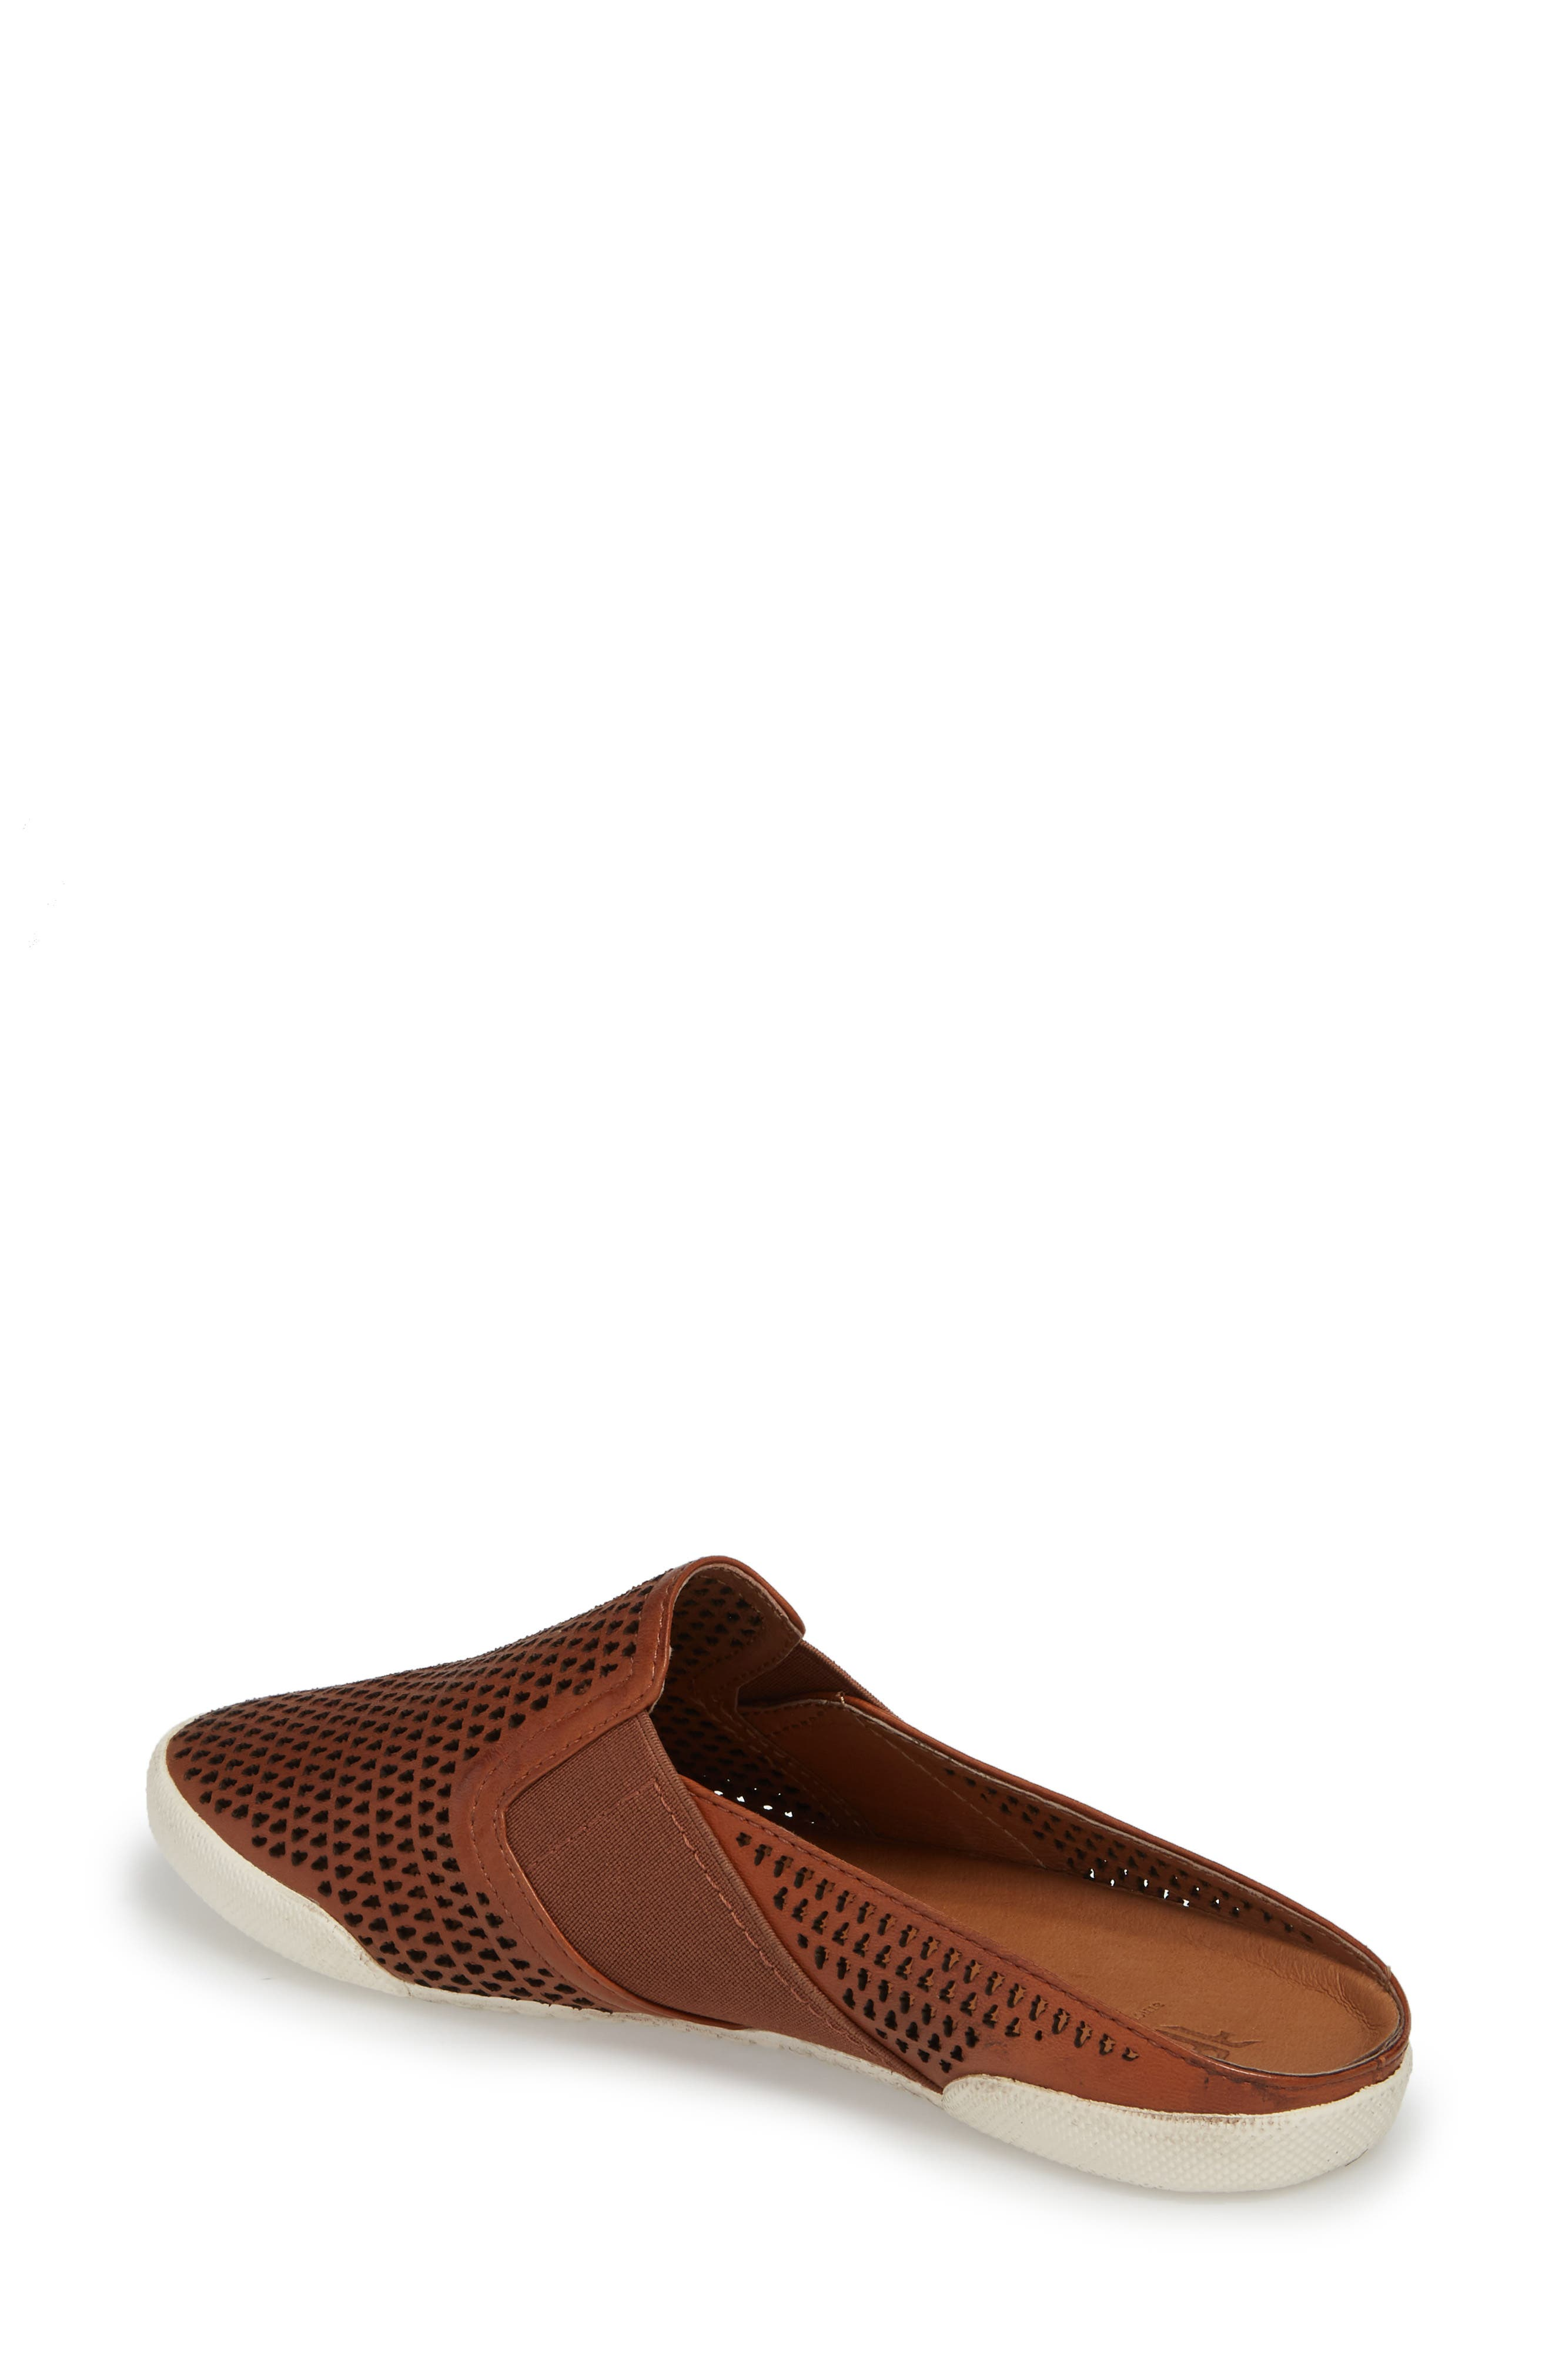 Melanie Perforated Mule,                             Alternate thumbnail 2, color,                             Cognac Leather